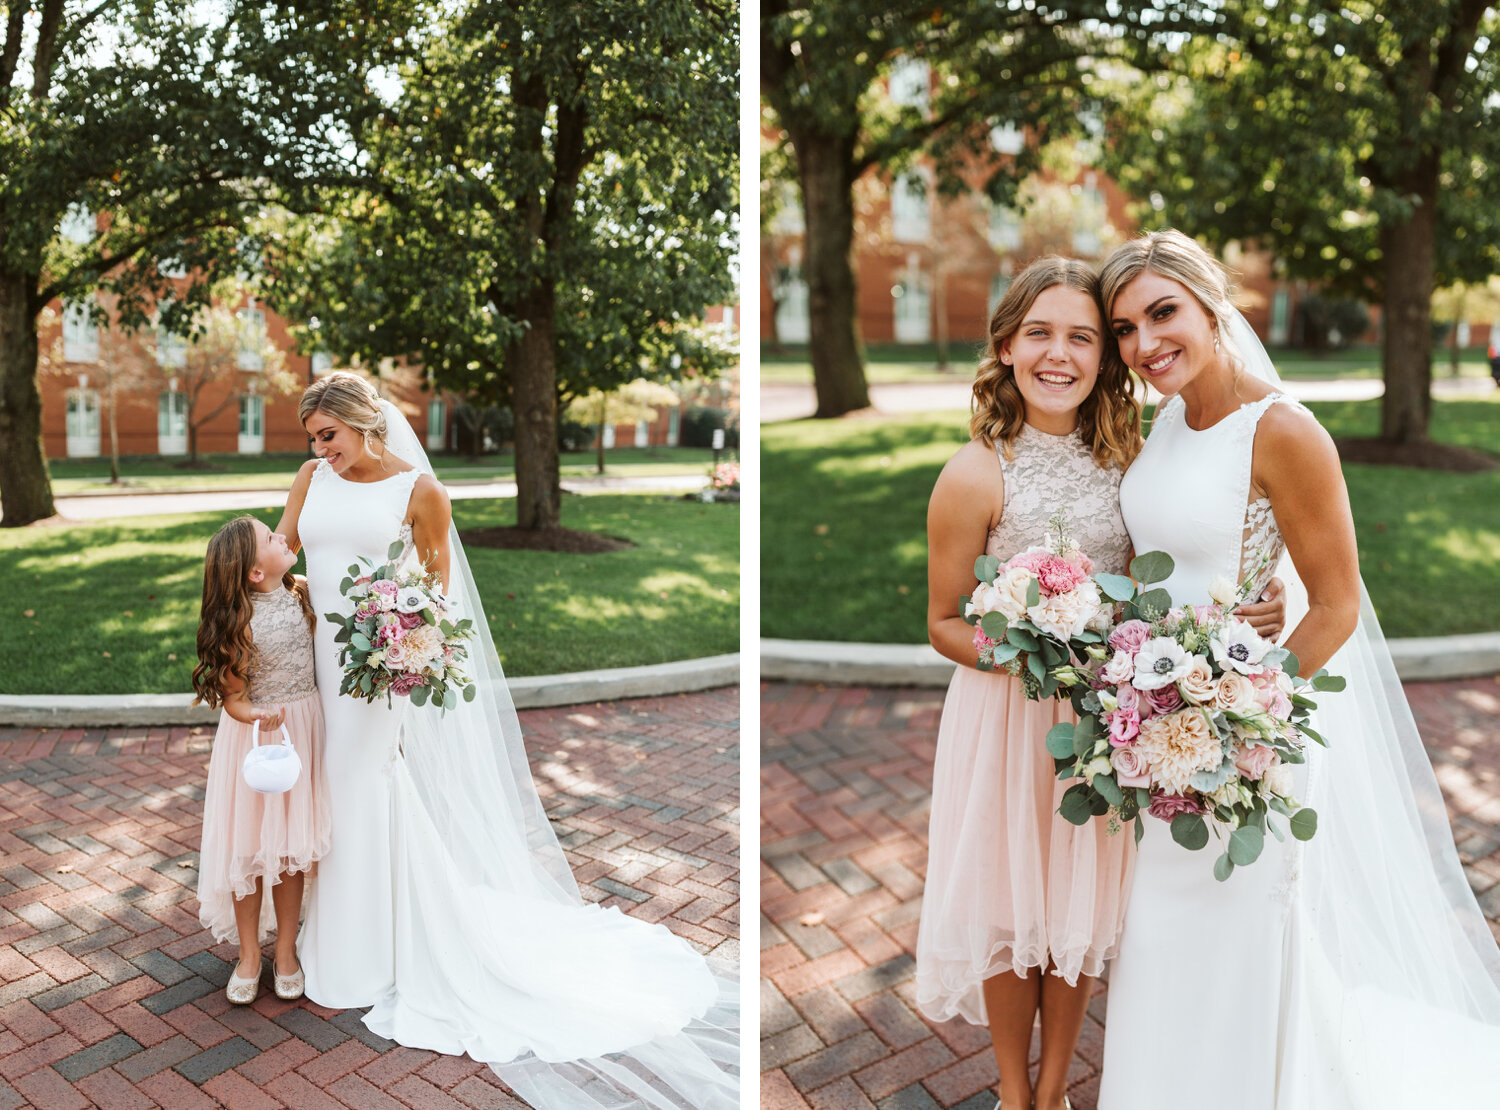 Flower girl and bride posing together